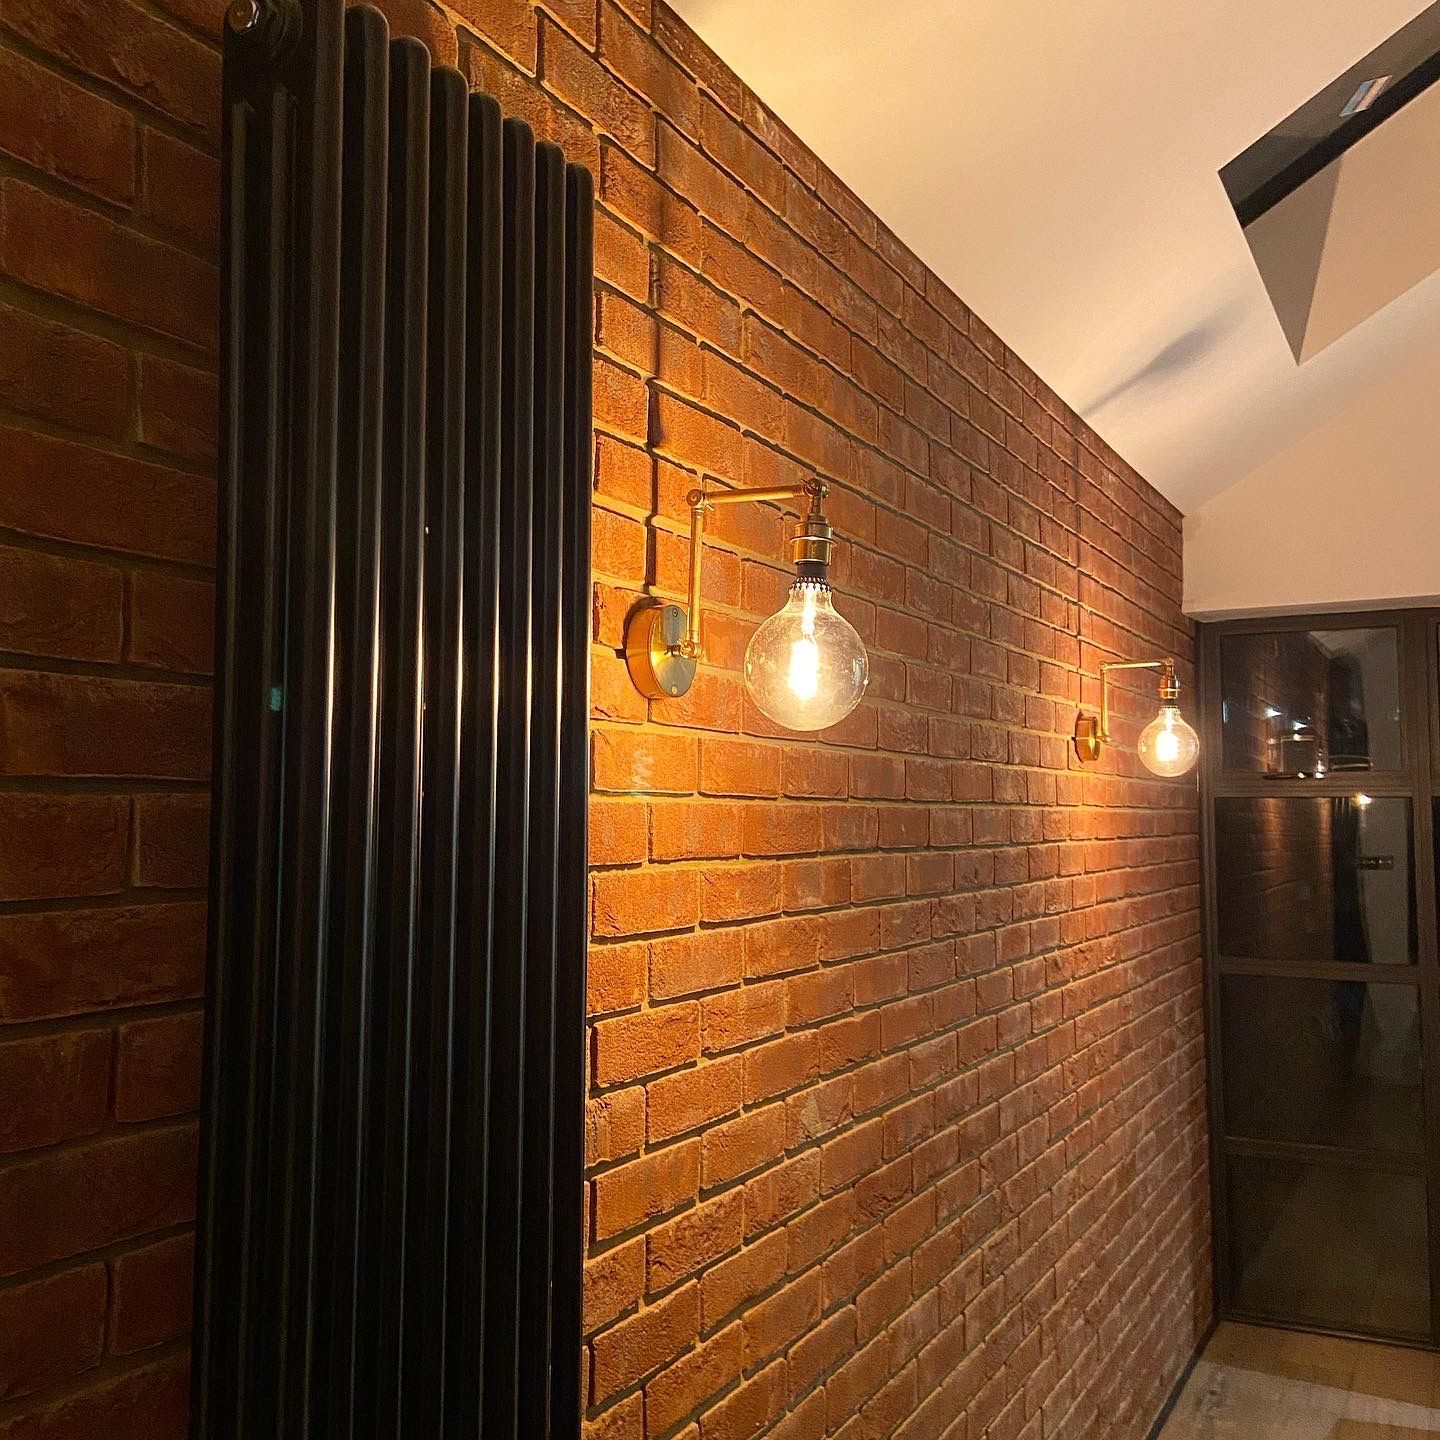 two brass fender wall lights fixed upon a brick wall